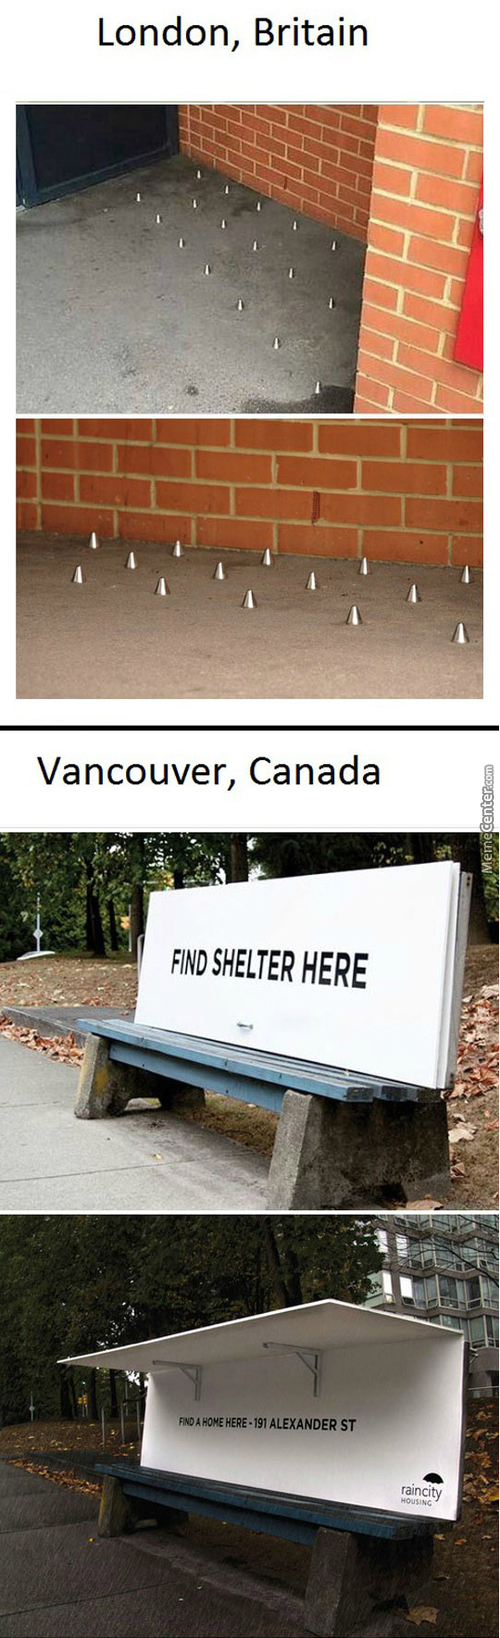 London For Fakirs, Vancouver For Regular People.